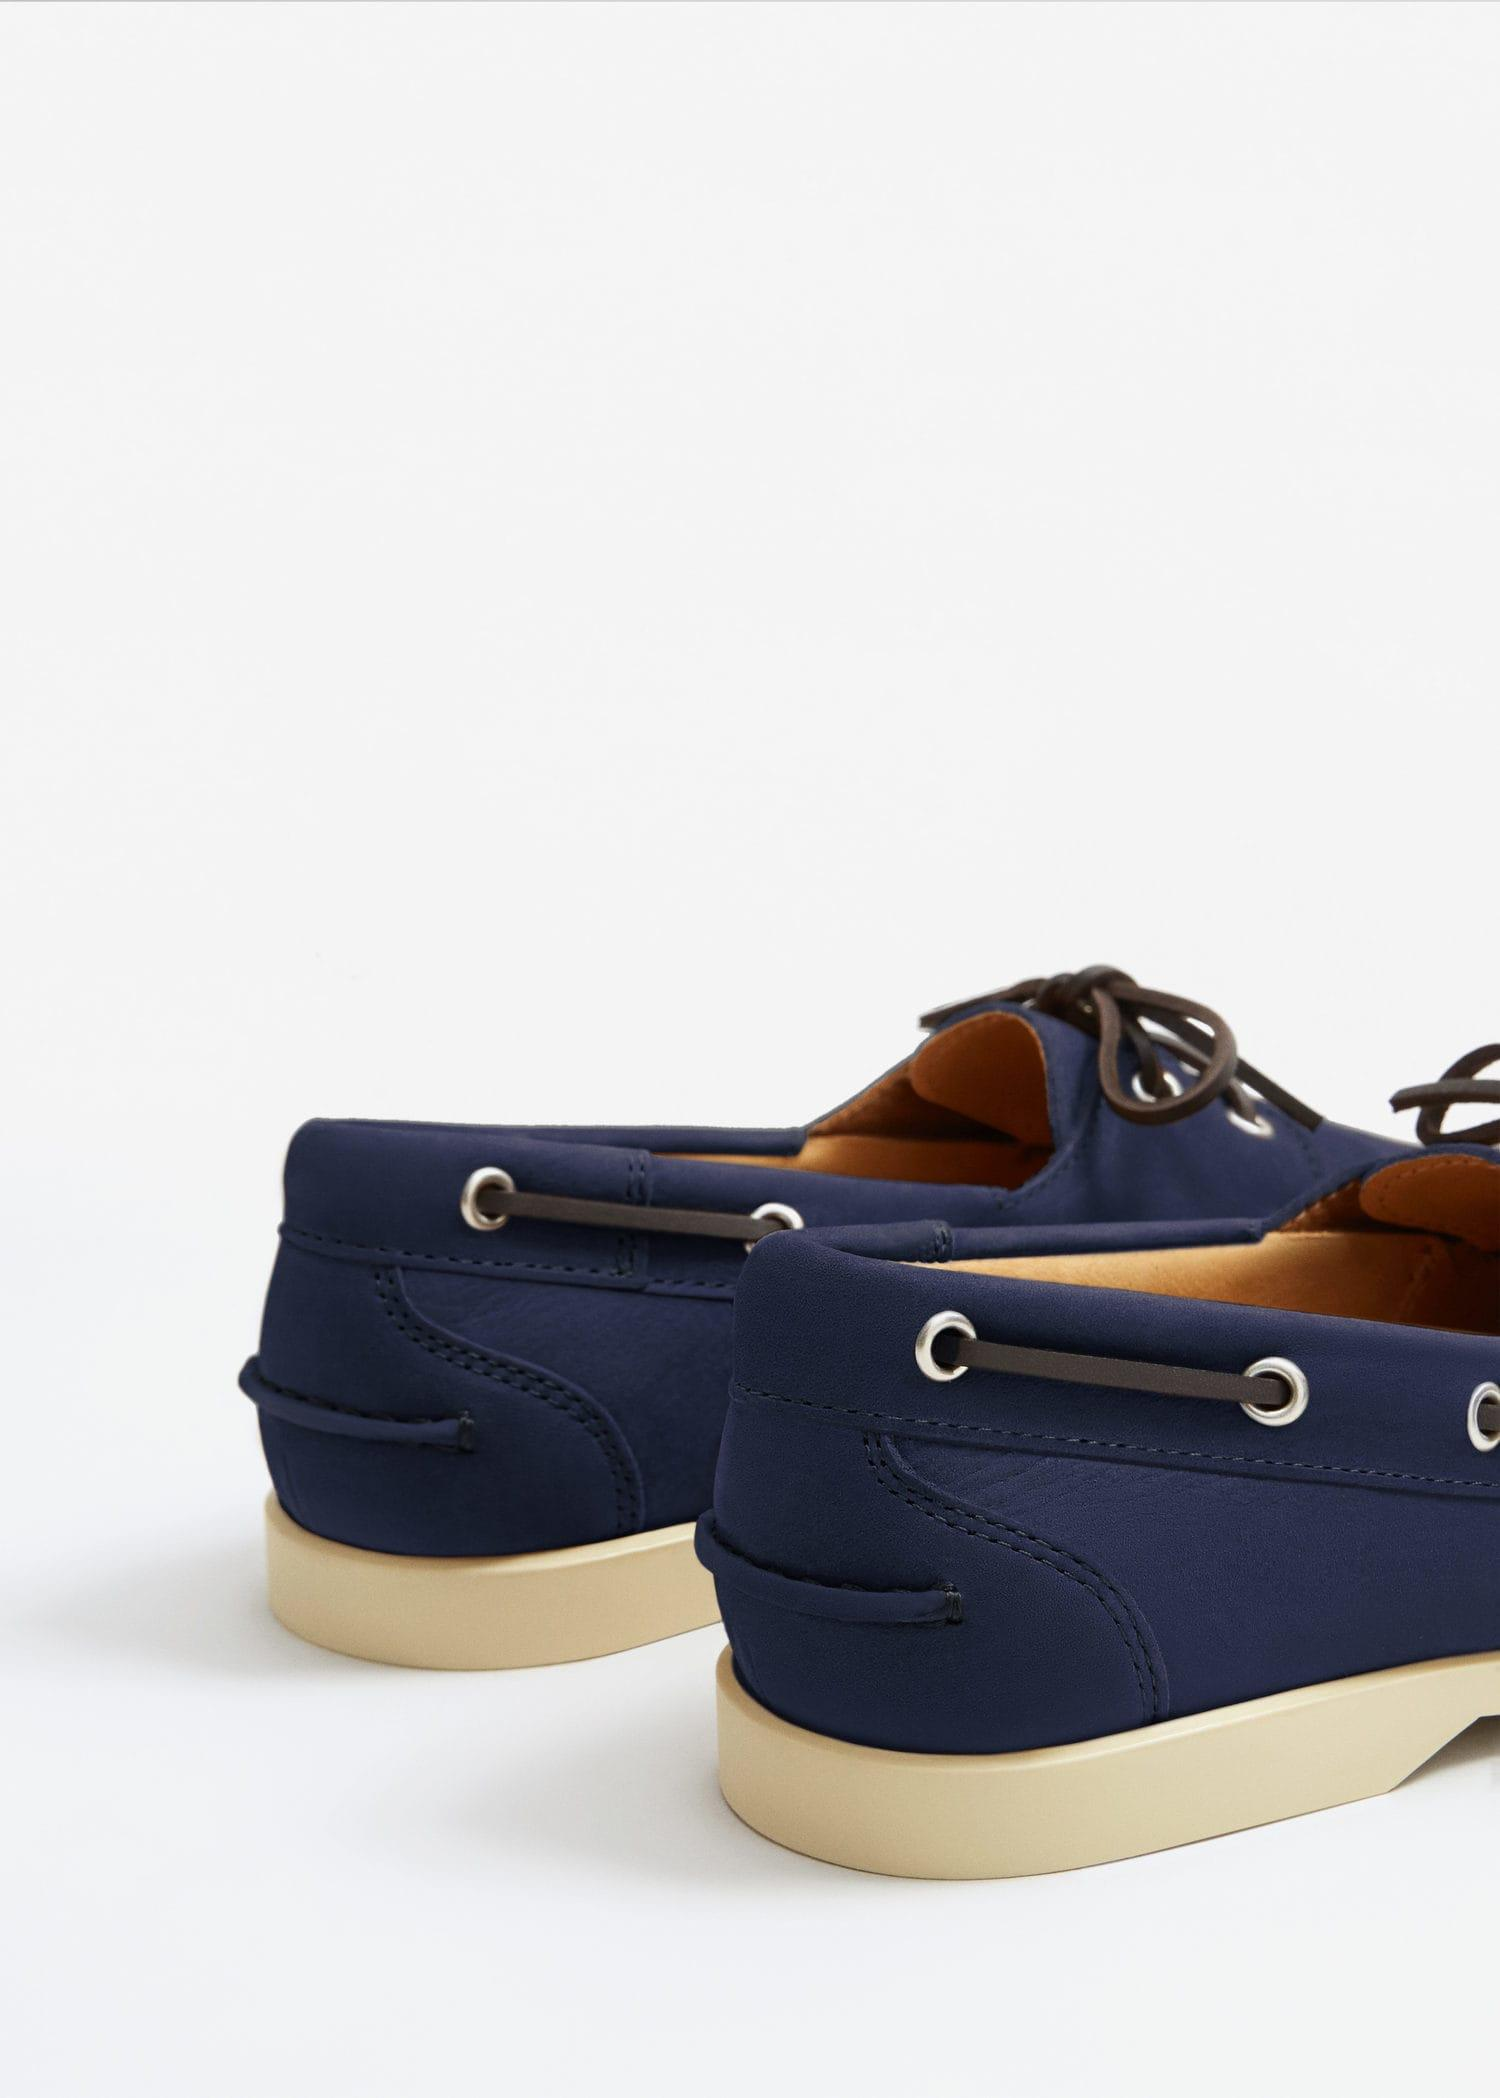 Mango Nubuck Leather Boat Shoes in Blue for Men